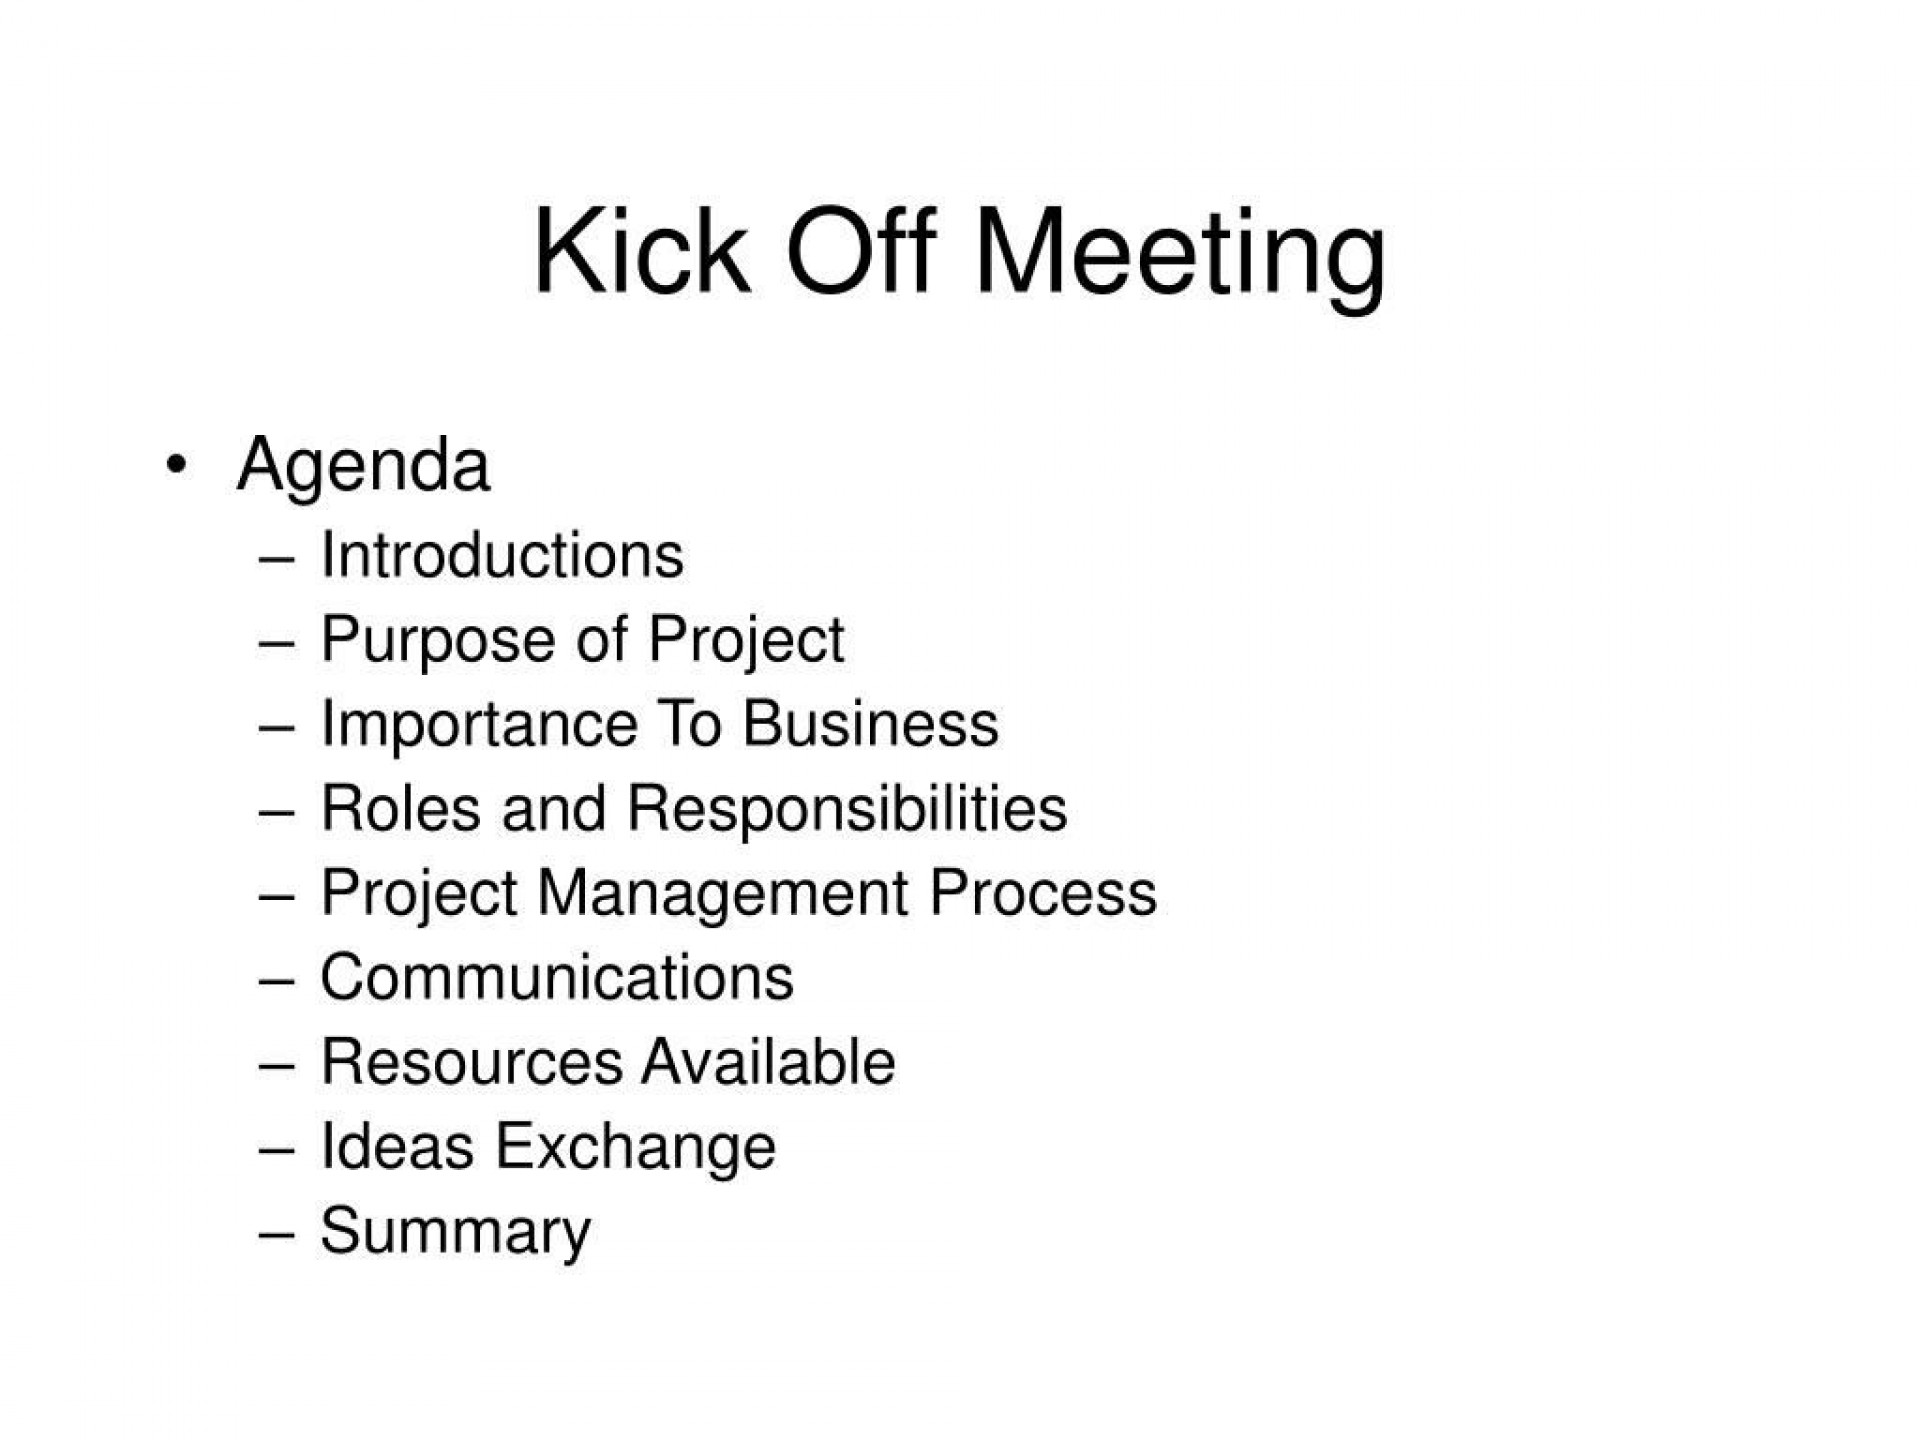 008 Top Project Management Kickoff Meeting Agenda Template Sample 1920